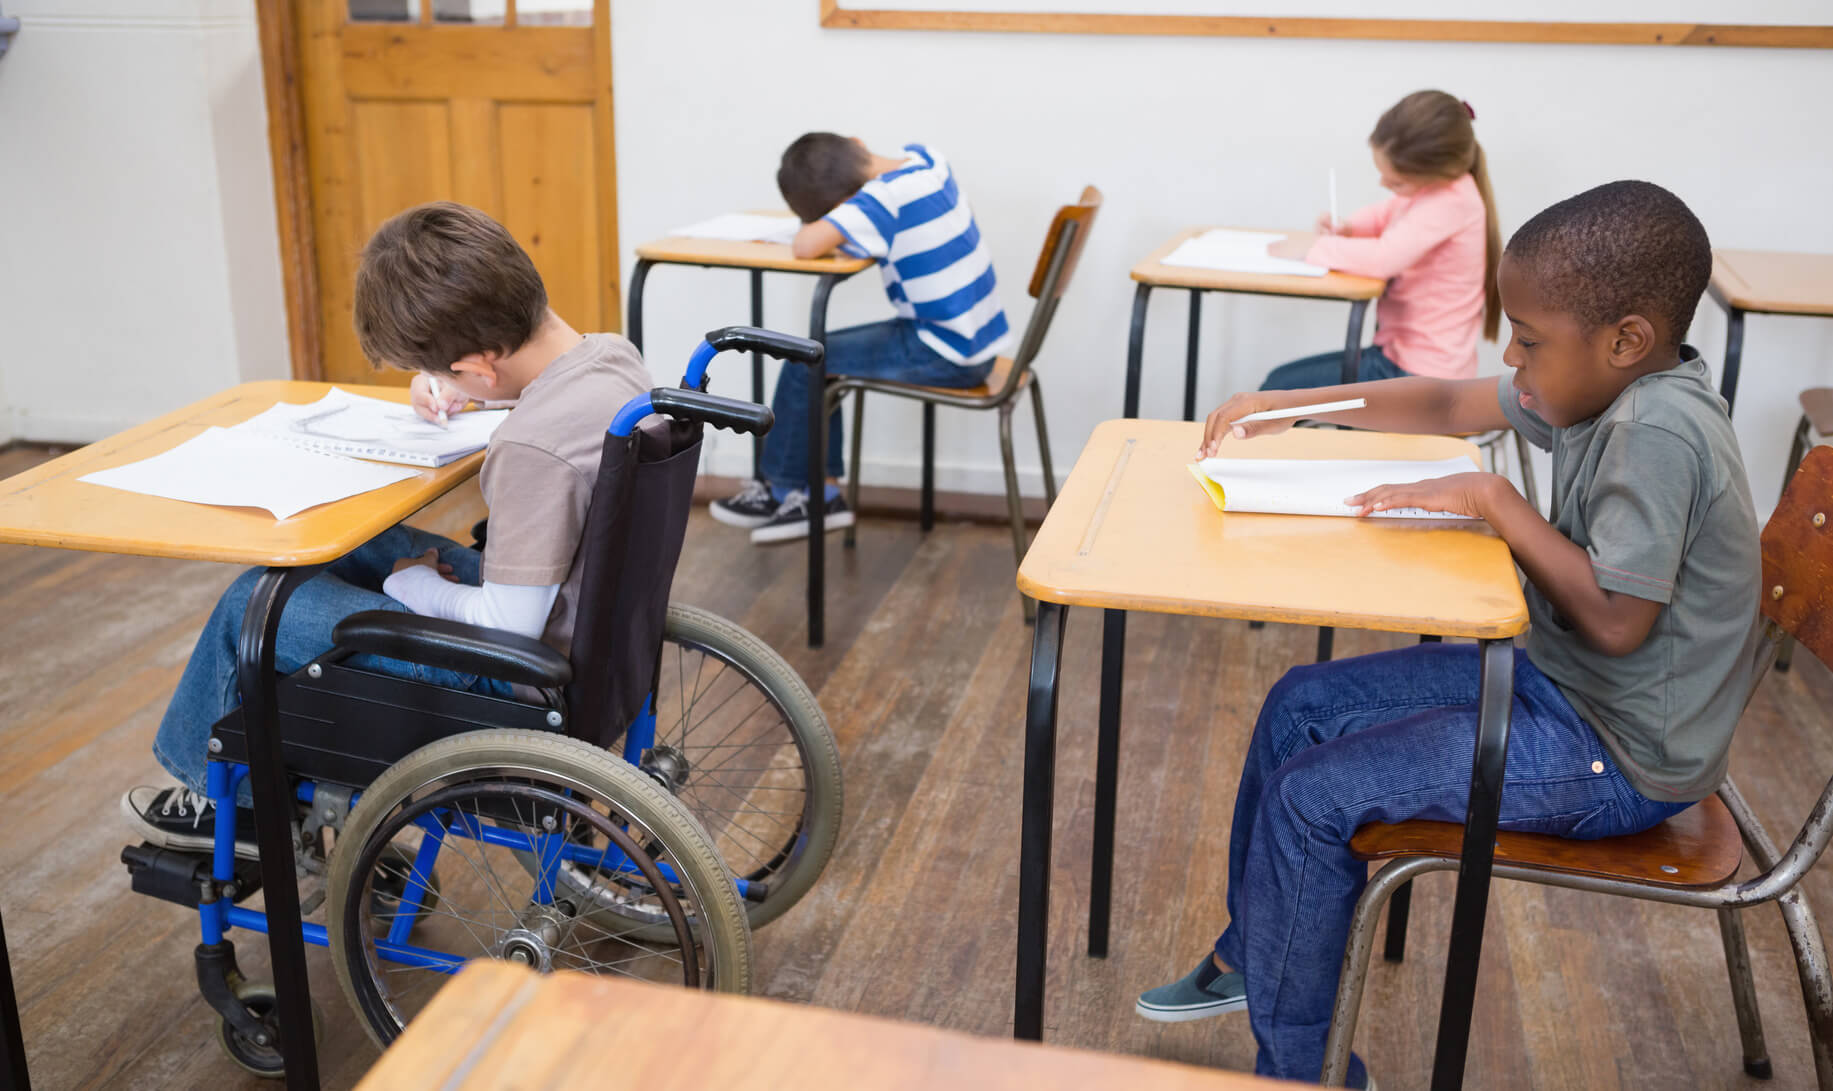 How Can Schools Avoid Disability Discrimination?